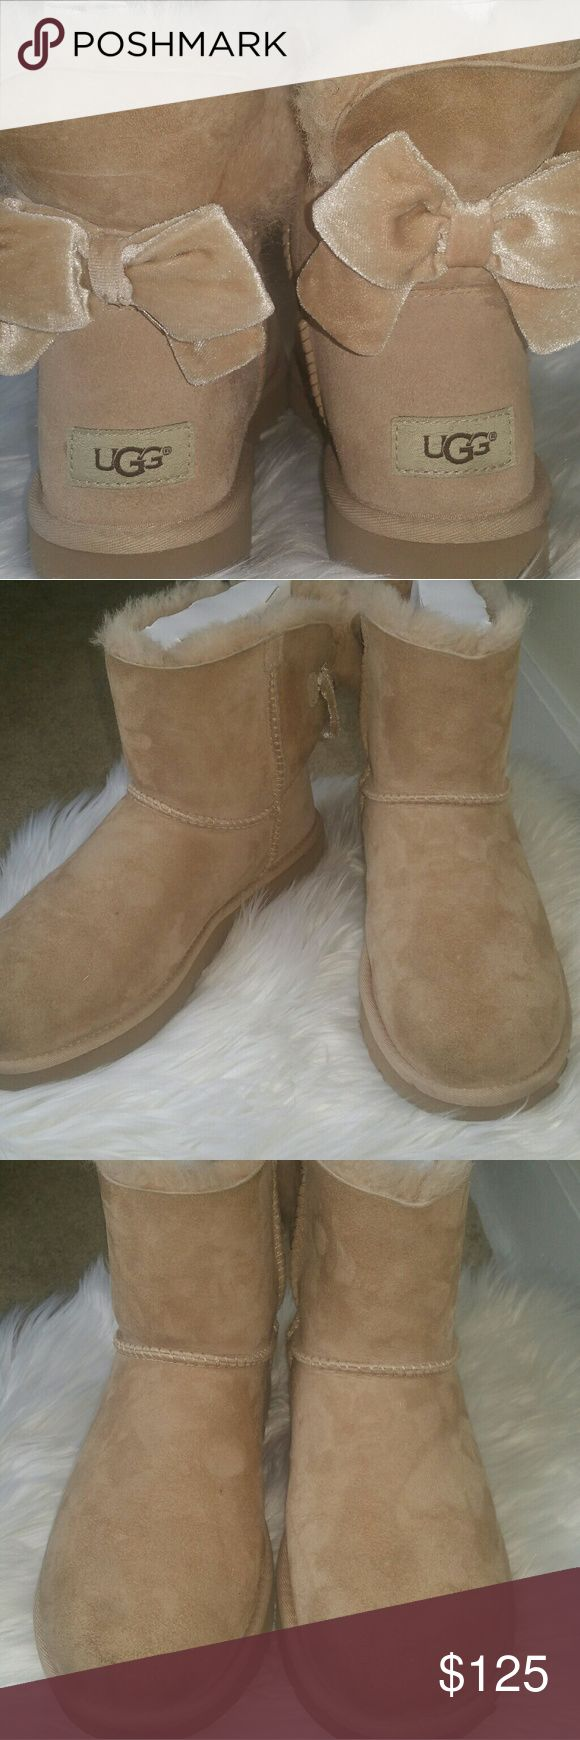 Ugg bailey bow II pink. Price not firm. Worn twice. Got a small stain on it and said I can't with this color..and bow in back needs to be re-sewn better. Other than that these are perfect authentic uggs.. I wear a size 9.. these fit perfectly . This is a size 8..accepting offers..:) purchased in December.. I will accept  reasonable offers. Please use the offer button.. UGG Shoes Winter & Rain Boots